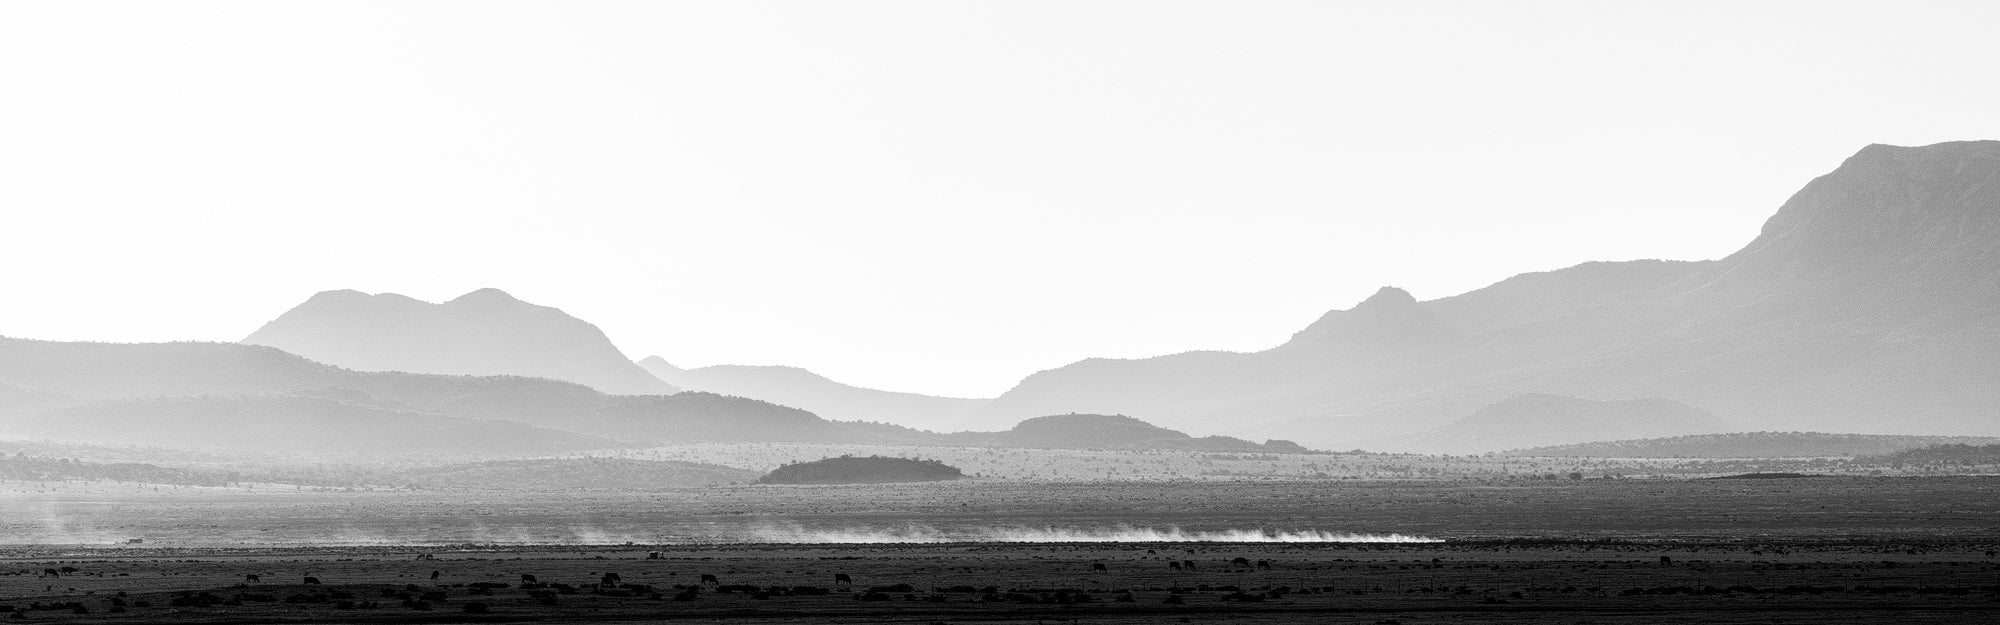 Desert Crossing: Black and White Landscape Photograph by Keith Dotson.